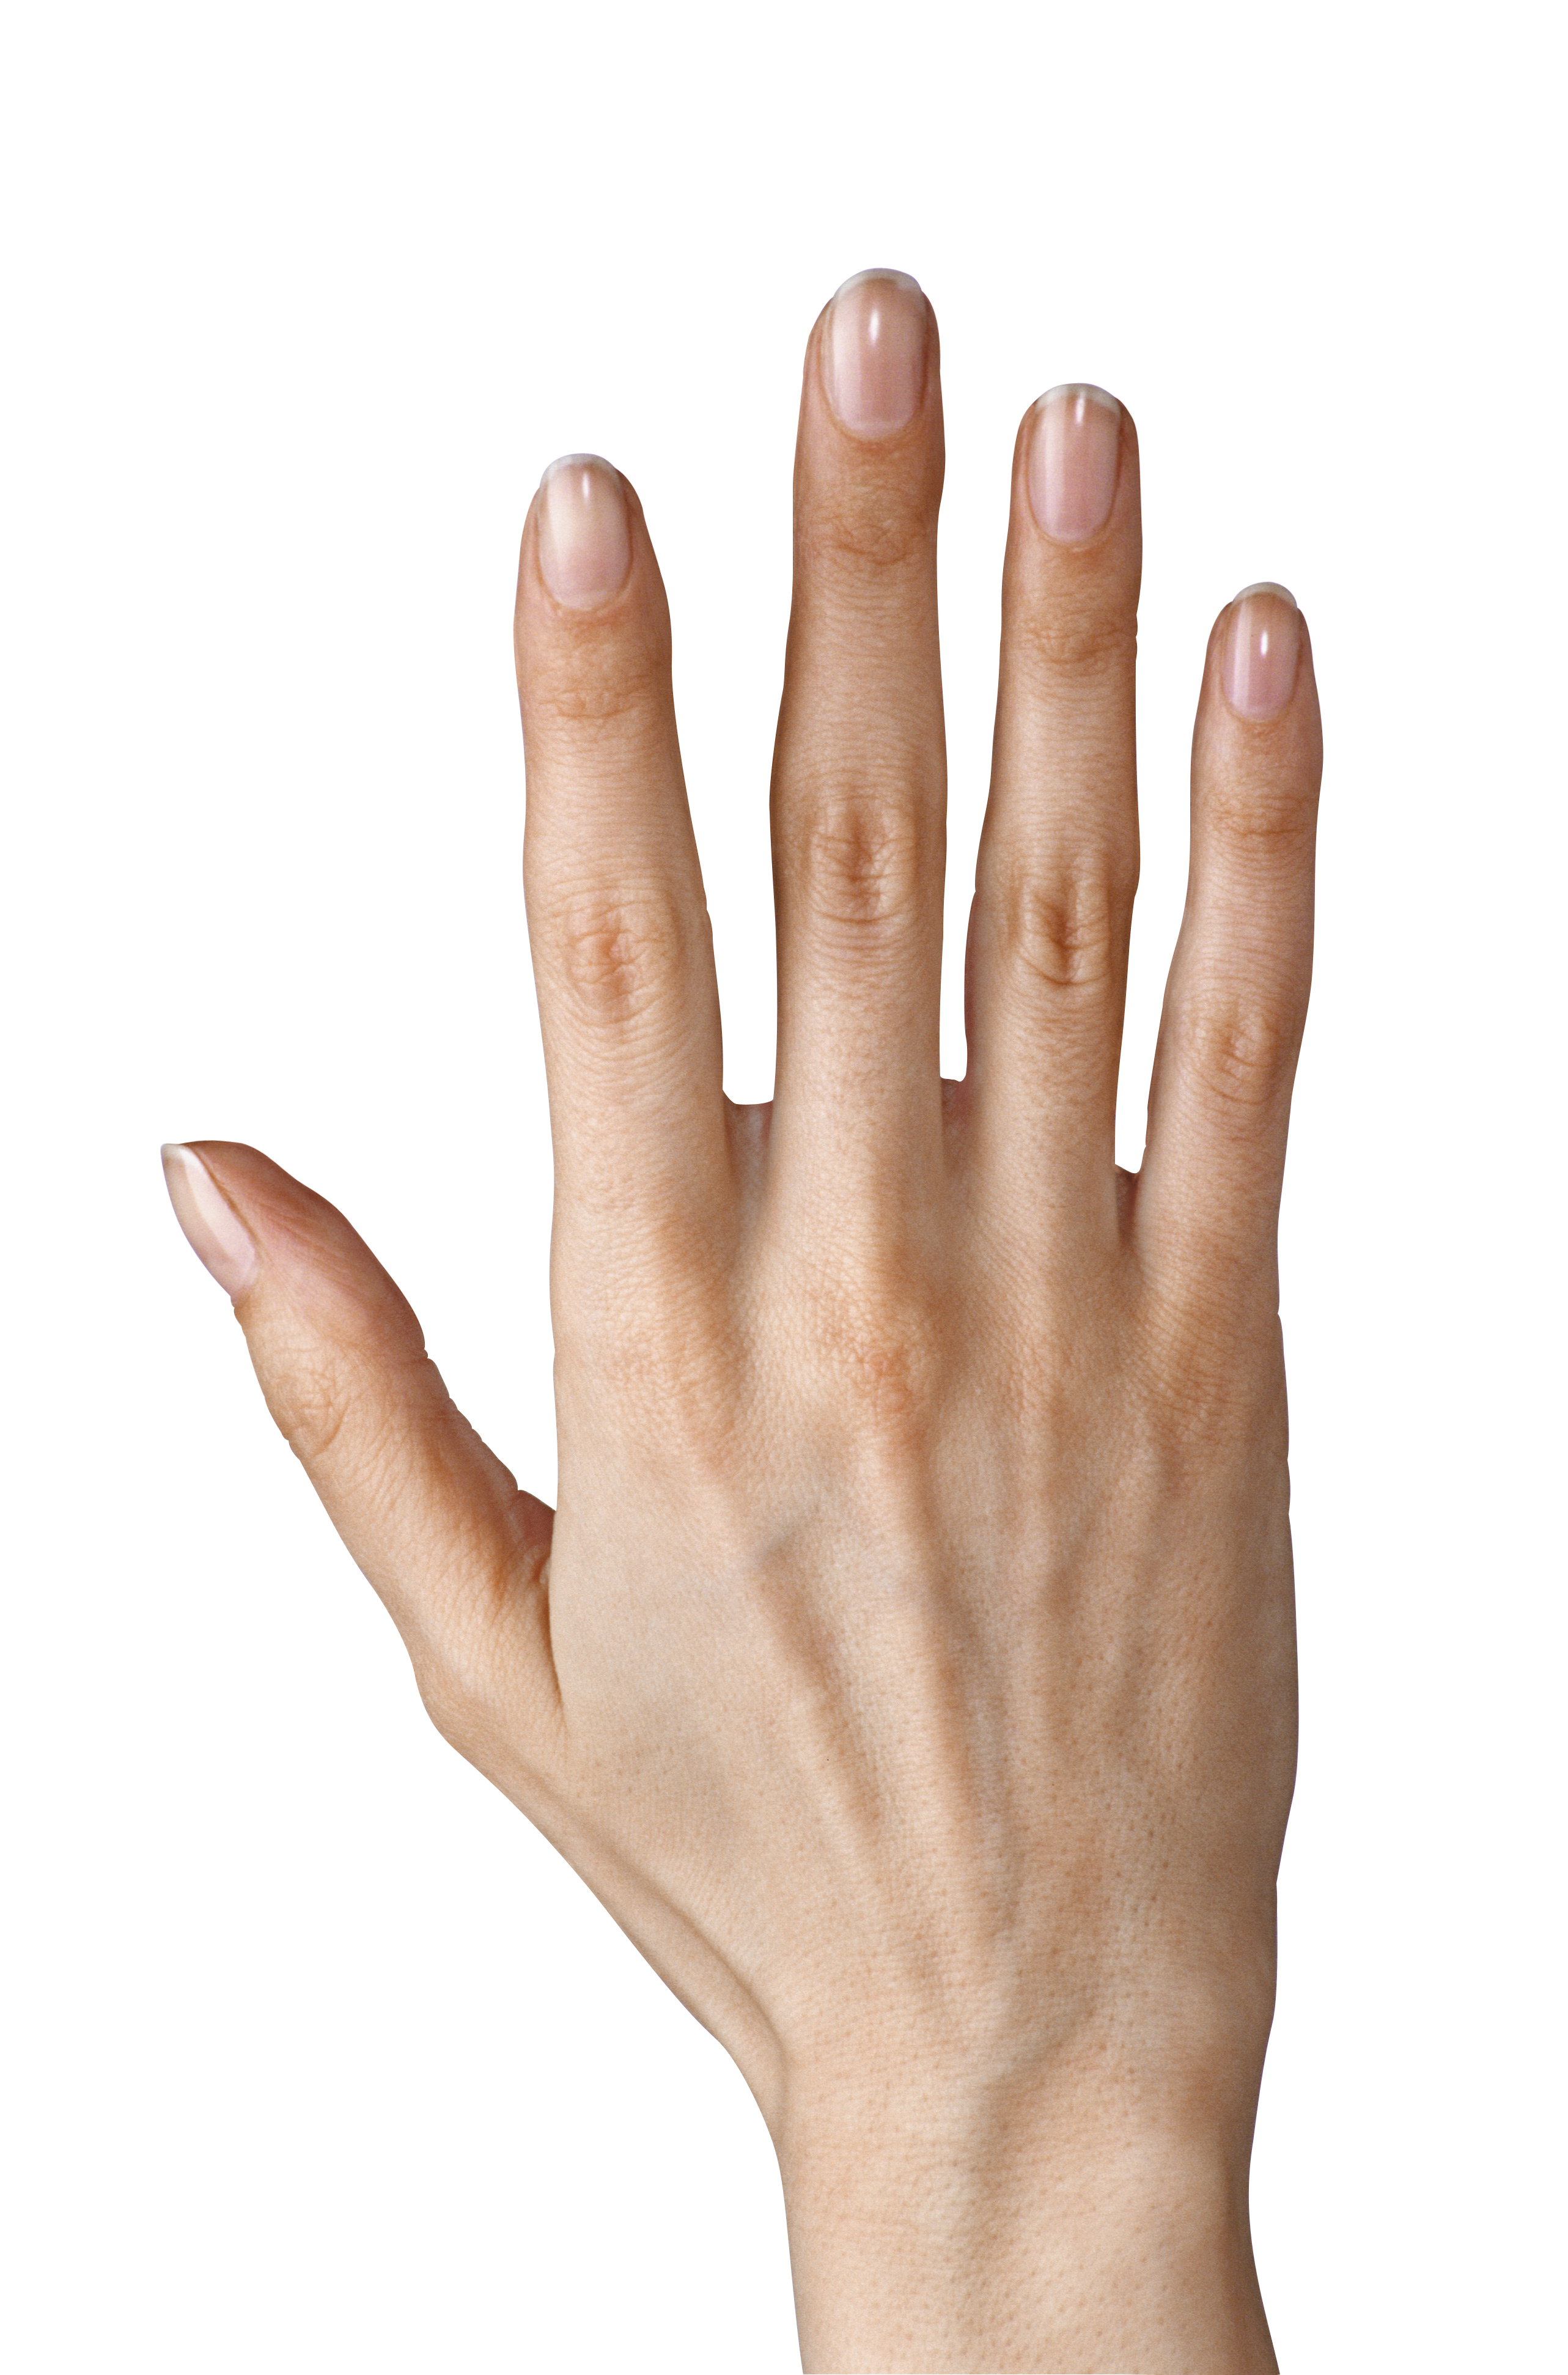 Hand clipart hd picture library stock Hand Showing Five Fingers PNG Clipart Image | Gallery Yopriceville ... picture library stock